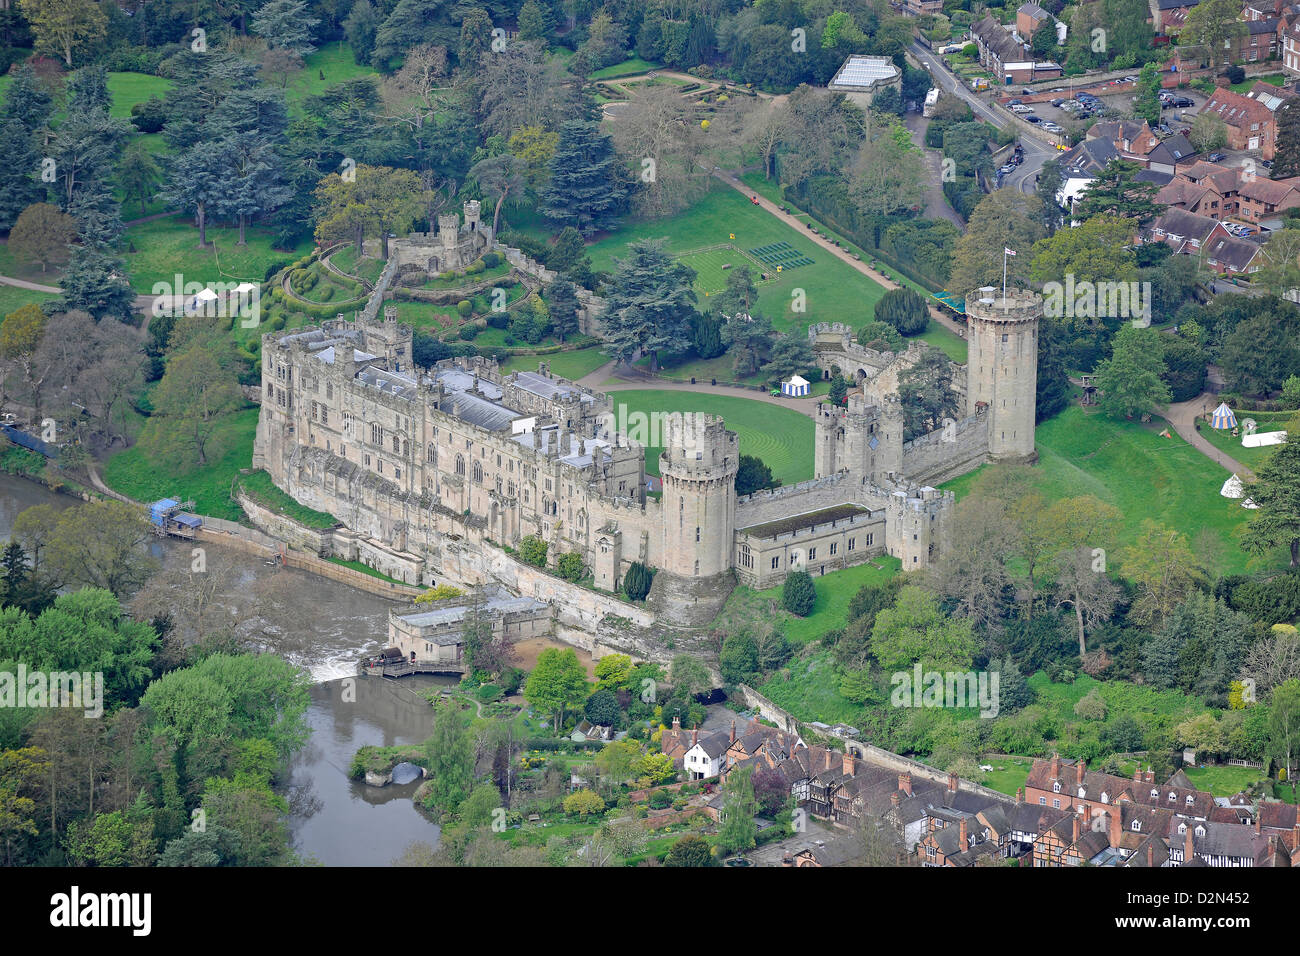 Aerial photograph of Warwick Castle Stock Photo